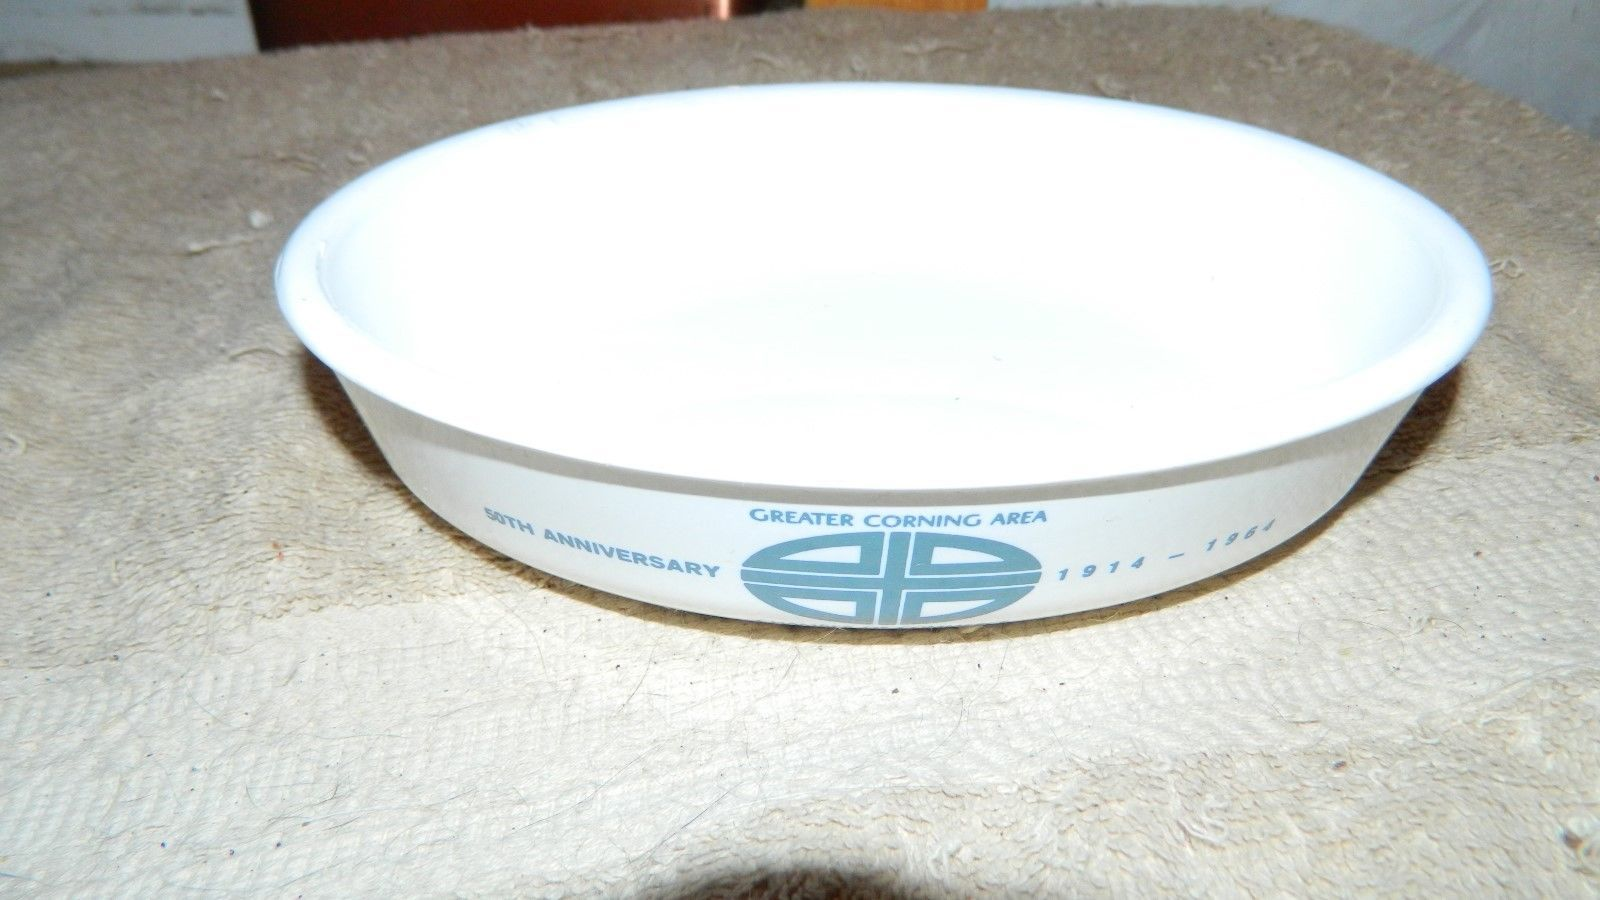 Primary image for CORNING WARE H-7 RARE 1964 CORNING NY CHAMBER OF COMMERCE DISH FREE USA SHIP